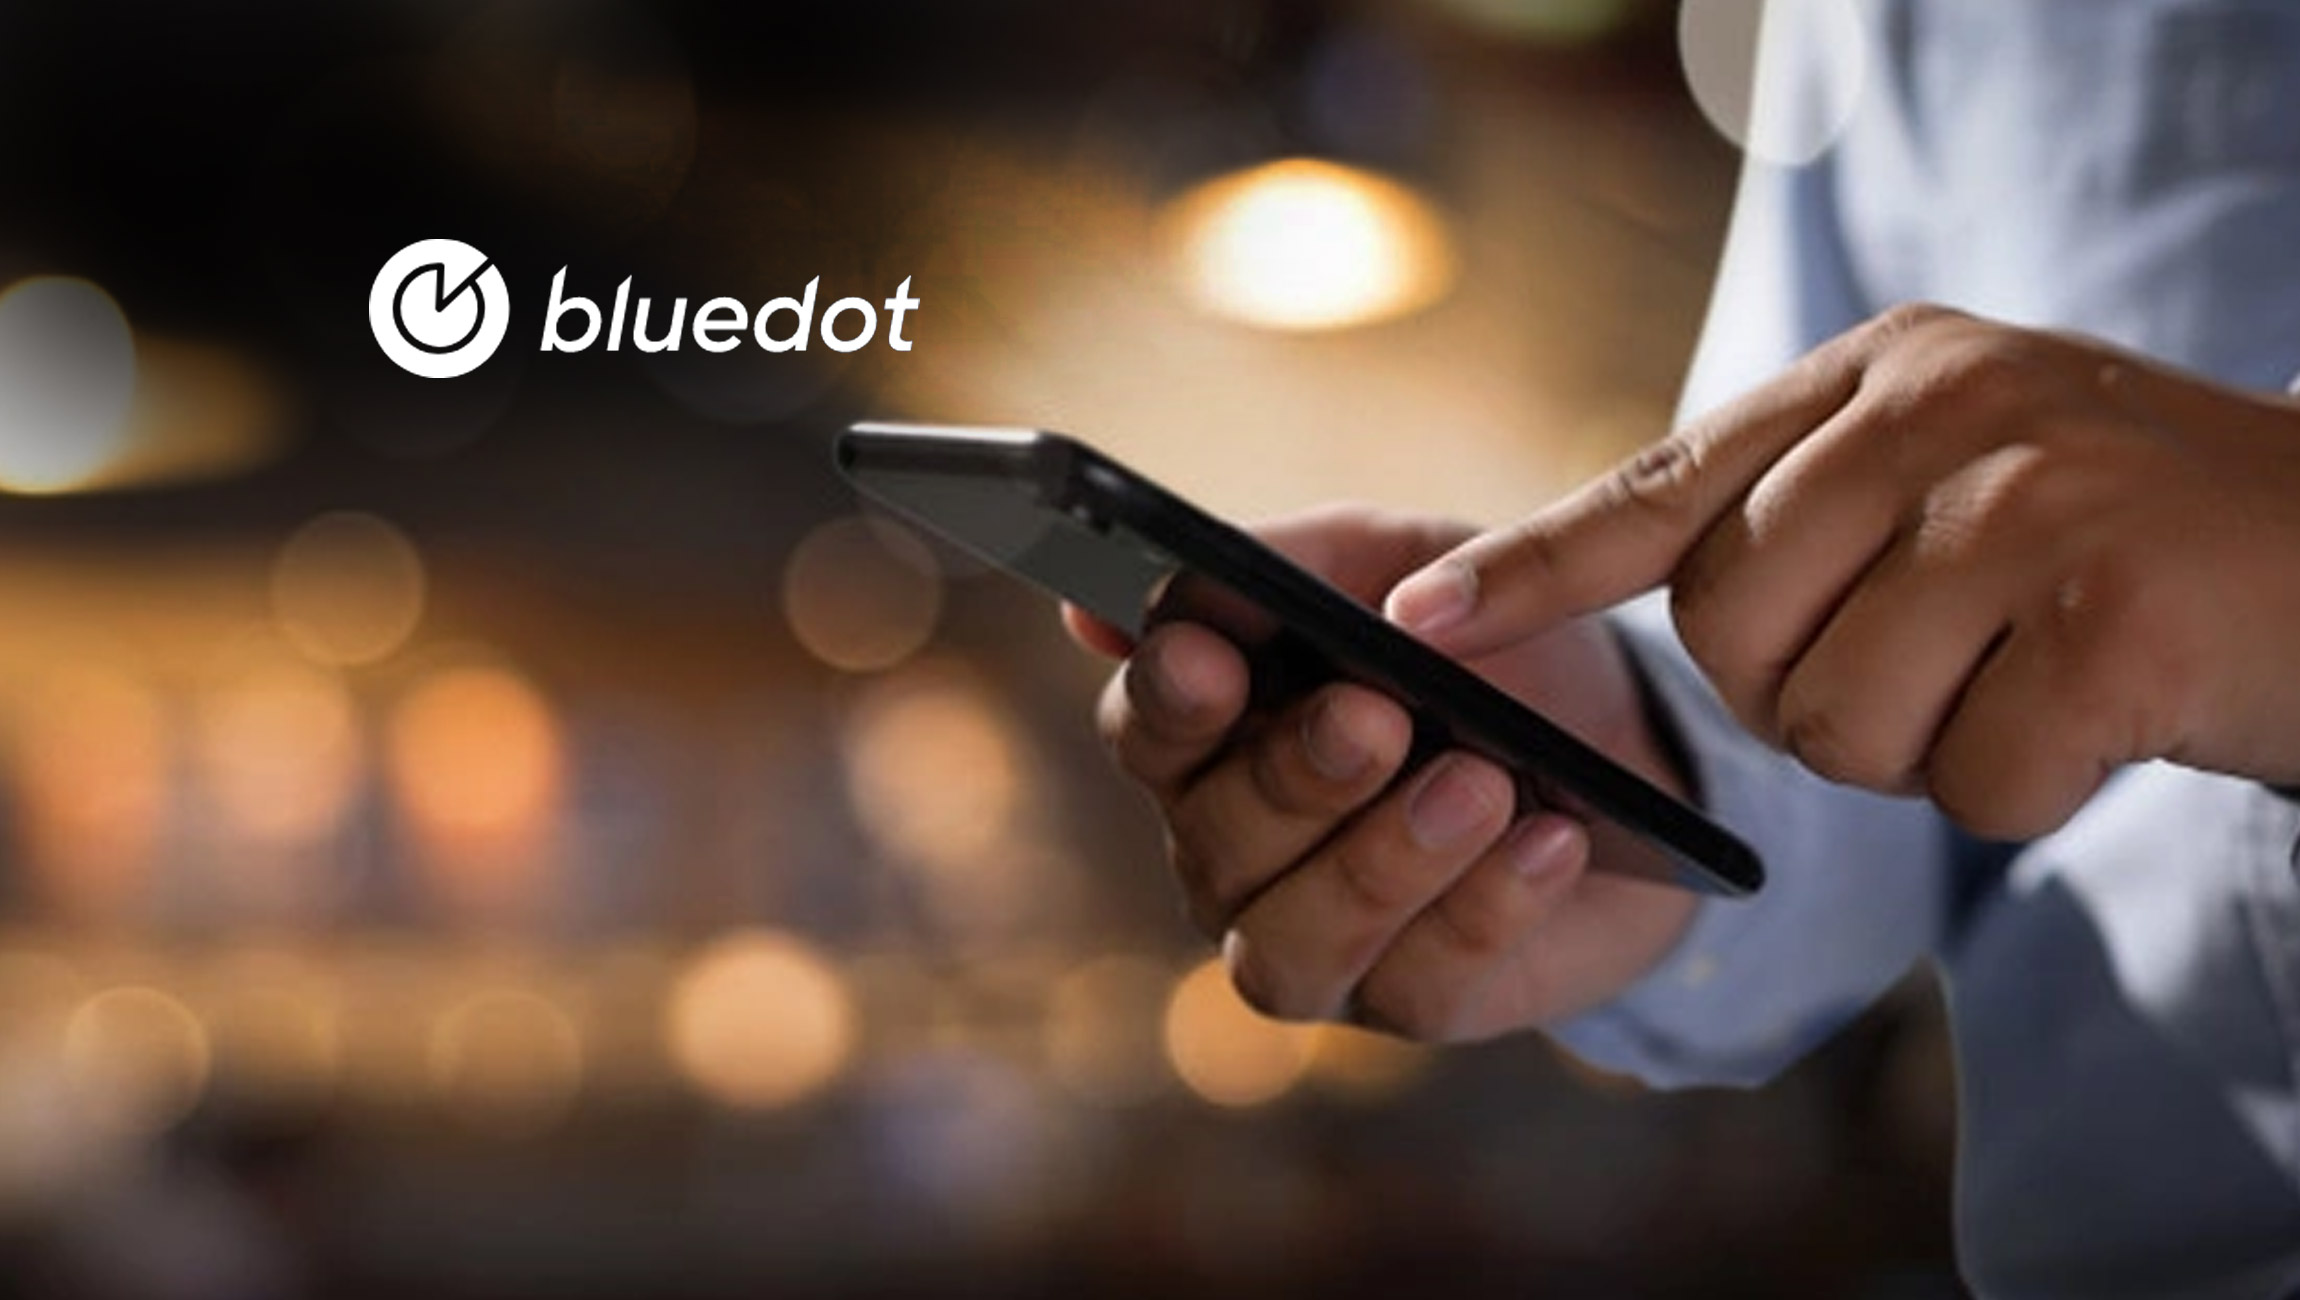 2021-Holiday-Habits-Report-from-Bluedot-Reveals-Overwhelming-Consumer-Concern-Over-Merchandise-Shortages_-Empty-Shelves_-and-Price-Increases